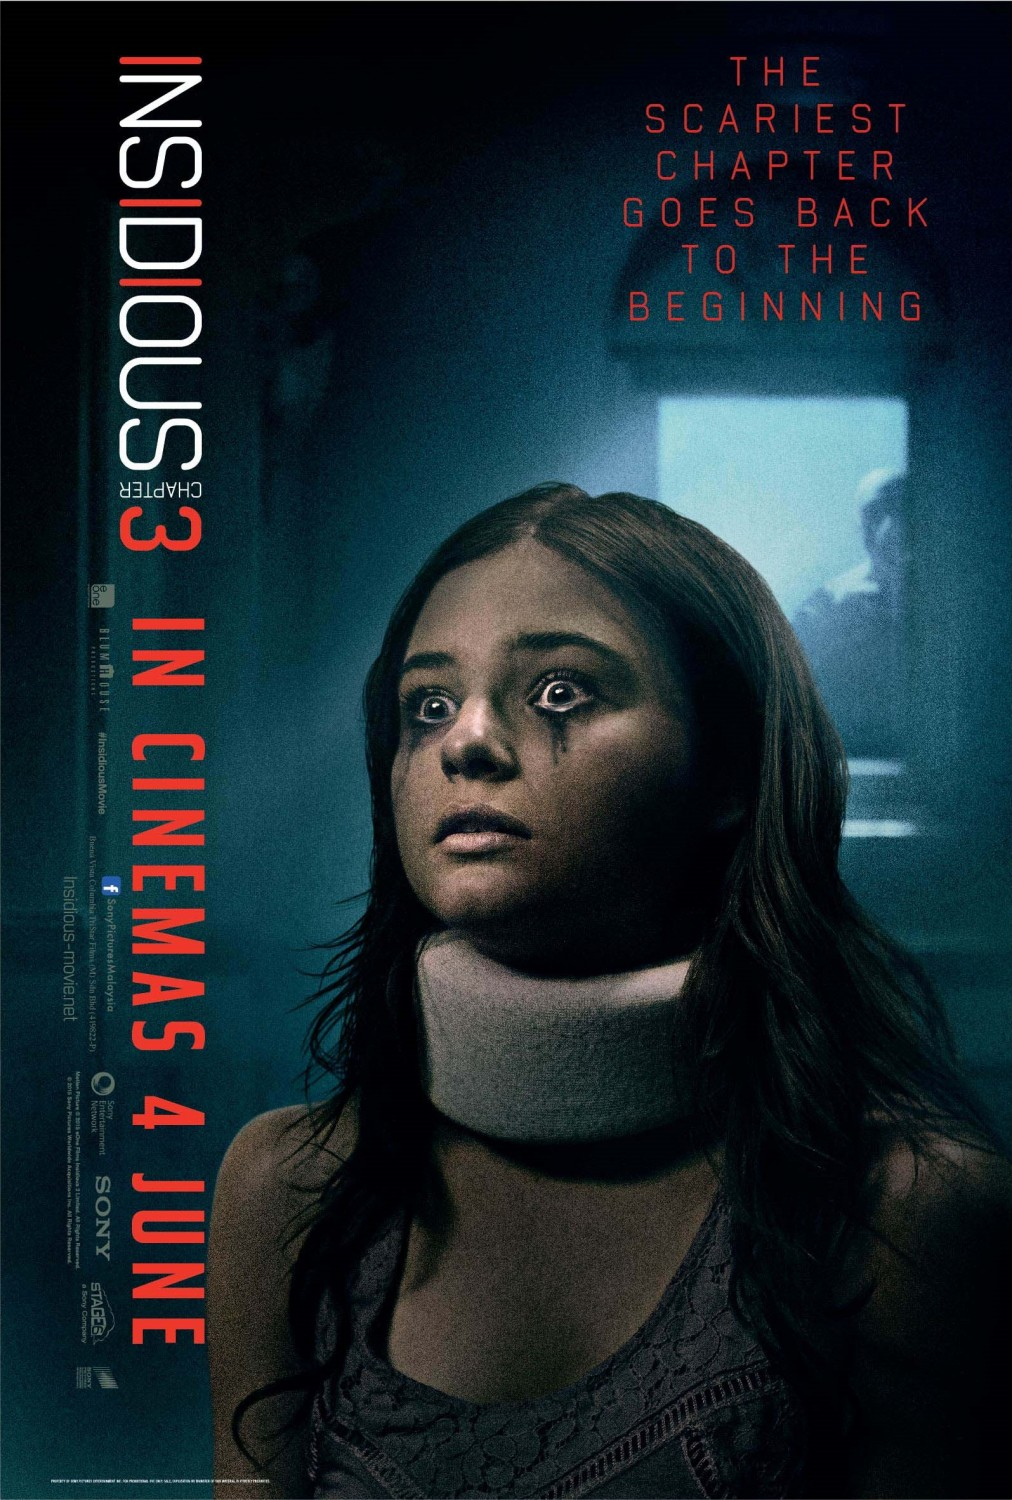 Inidious poster